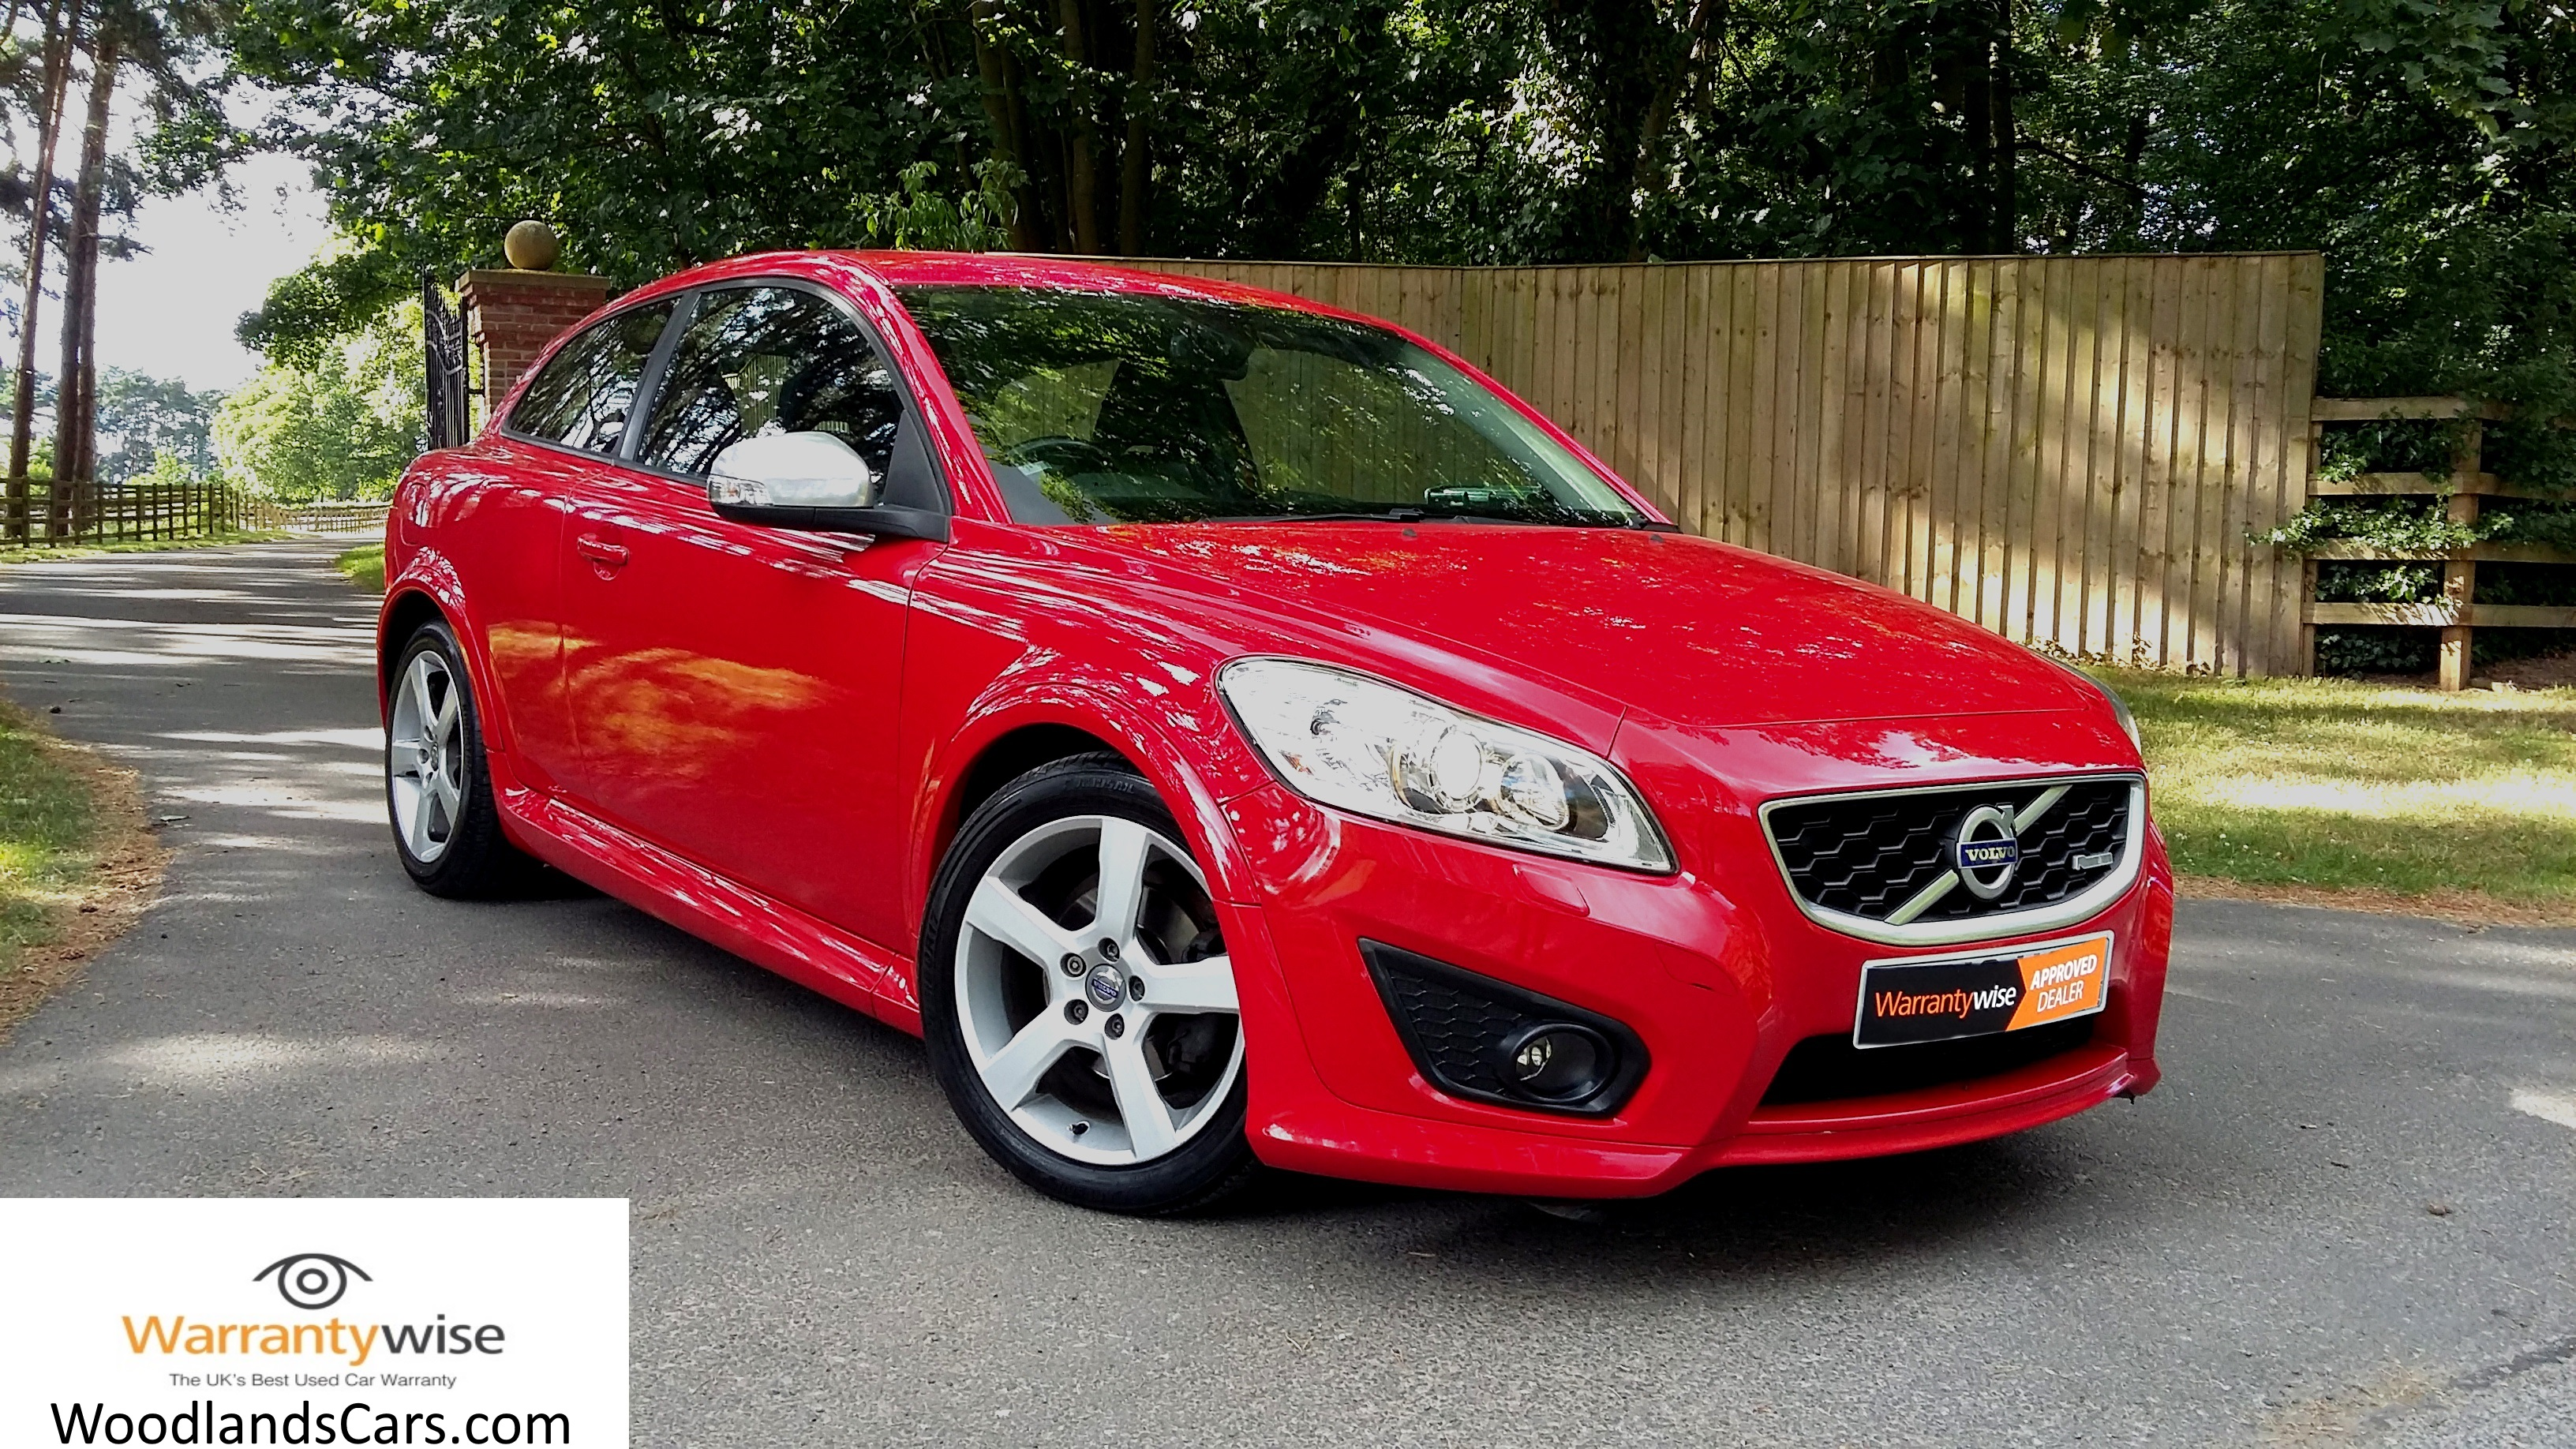 Volvo Of The Woodlands >> Volvo C30 R Design For Sale By Woodlands Cars Ltd